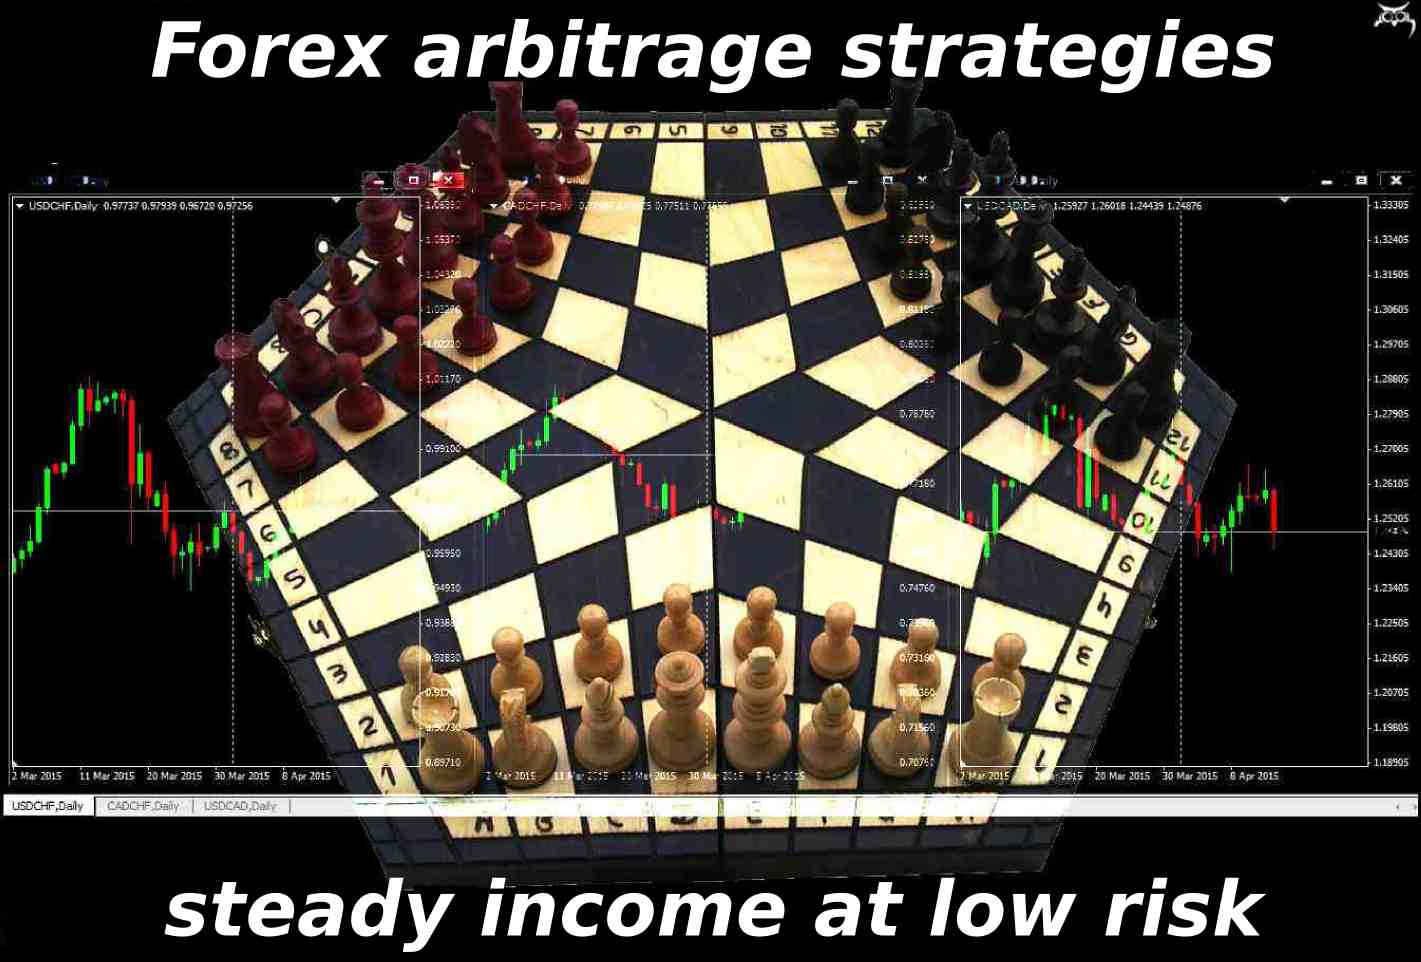 Arbitrage stock trading strategies